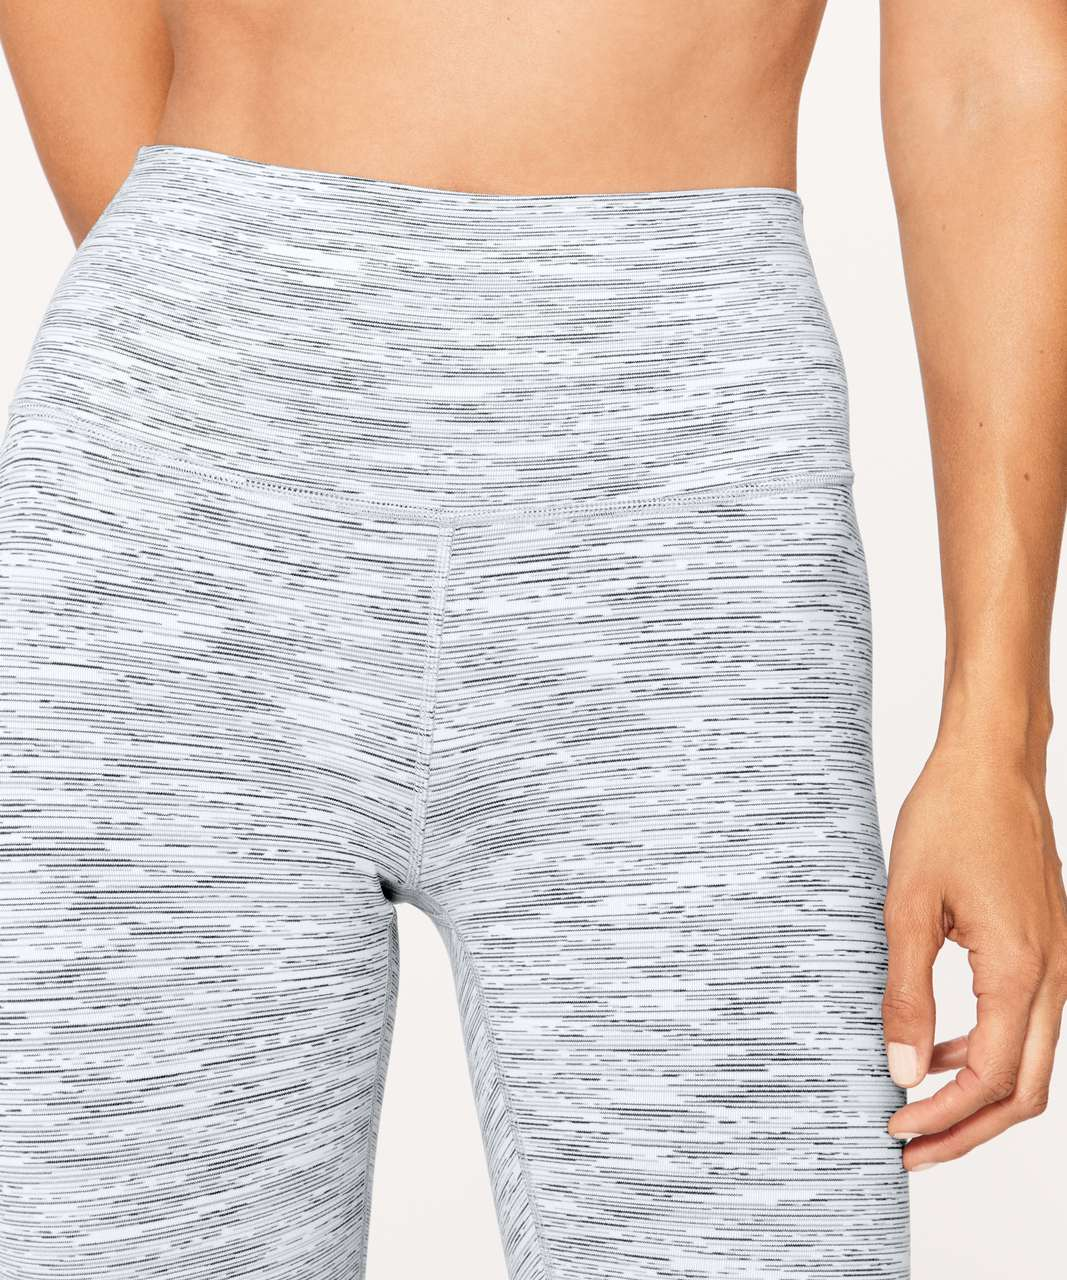 "Lululemon Wunder Under Hi-Rise 7/8 Tight *25"" - Wee Are From Space Ice Grey Alpine White"